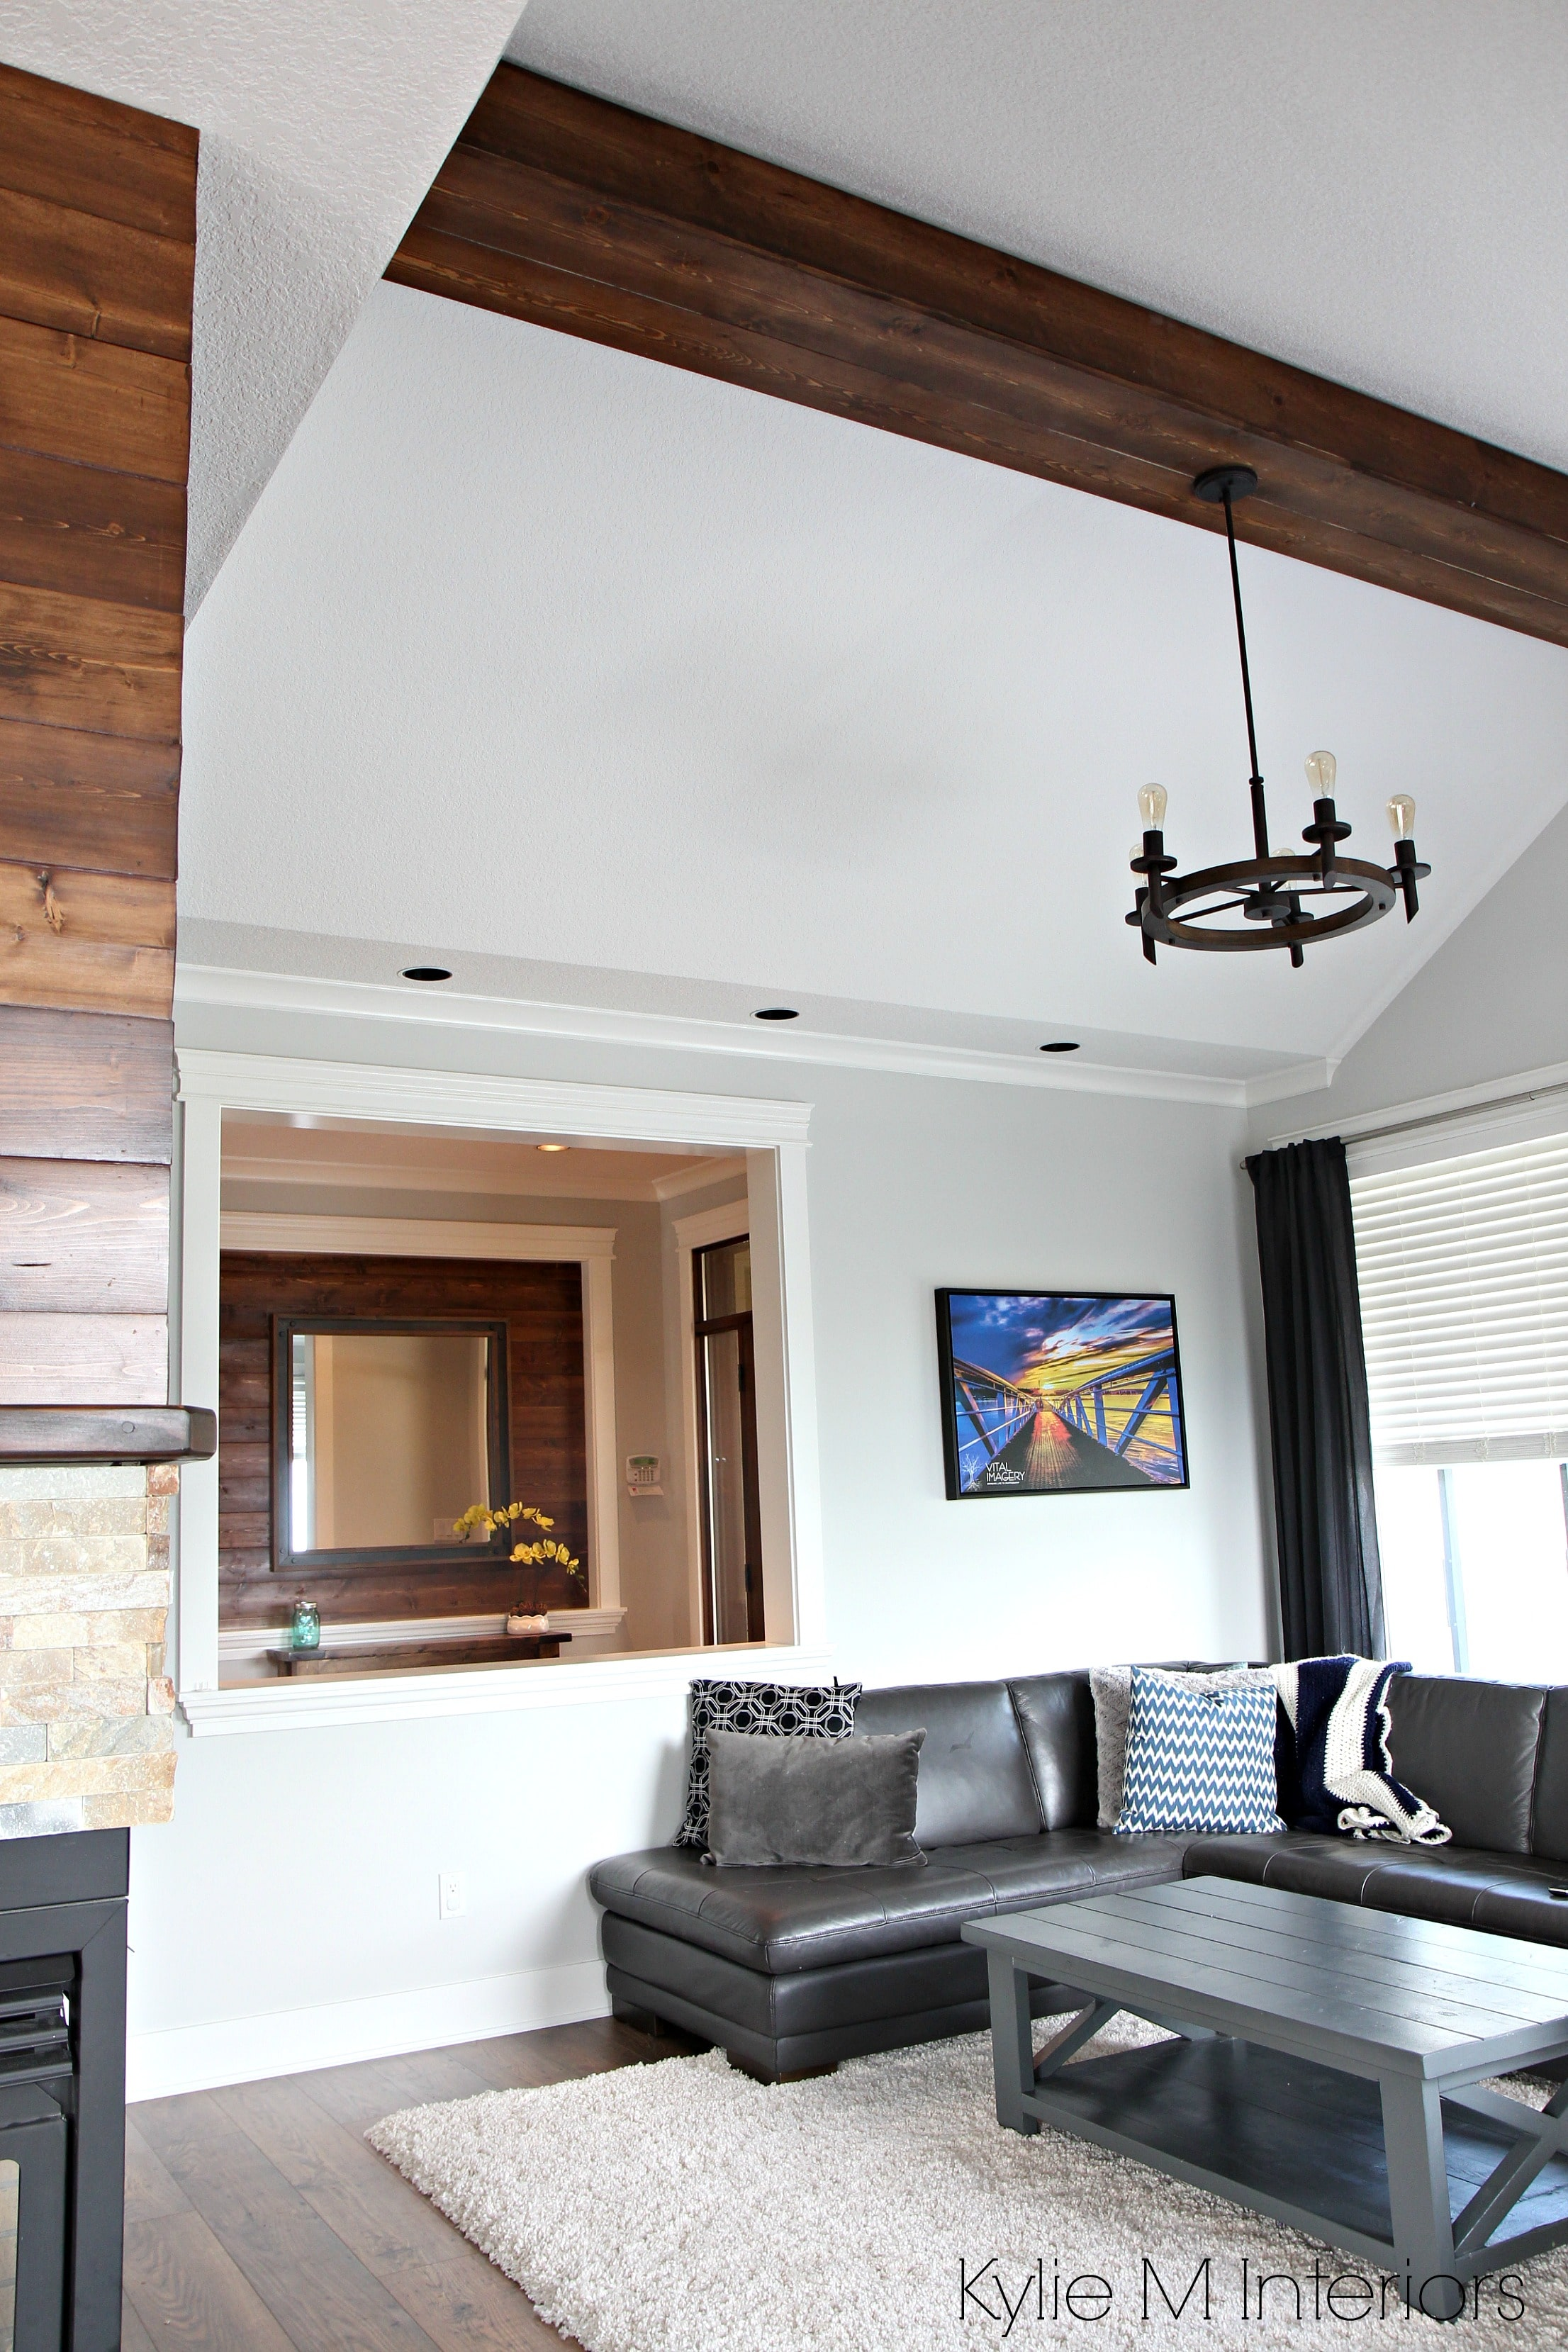 Living room design with vaulted ceiling faux wood beam chandelier living room design with vaulted ceiling faux wood beam chandelier benjamin moore gray owl paint colours design by kylie m interiors e decor mozeypictures Image collections